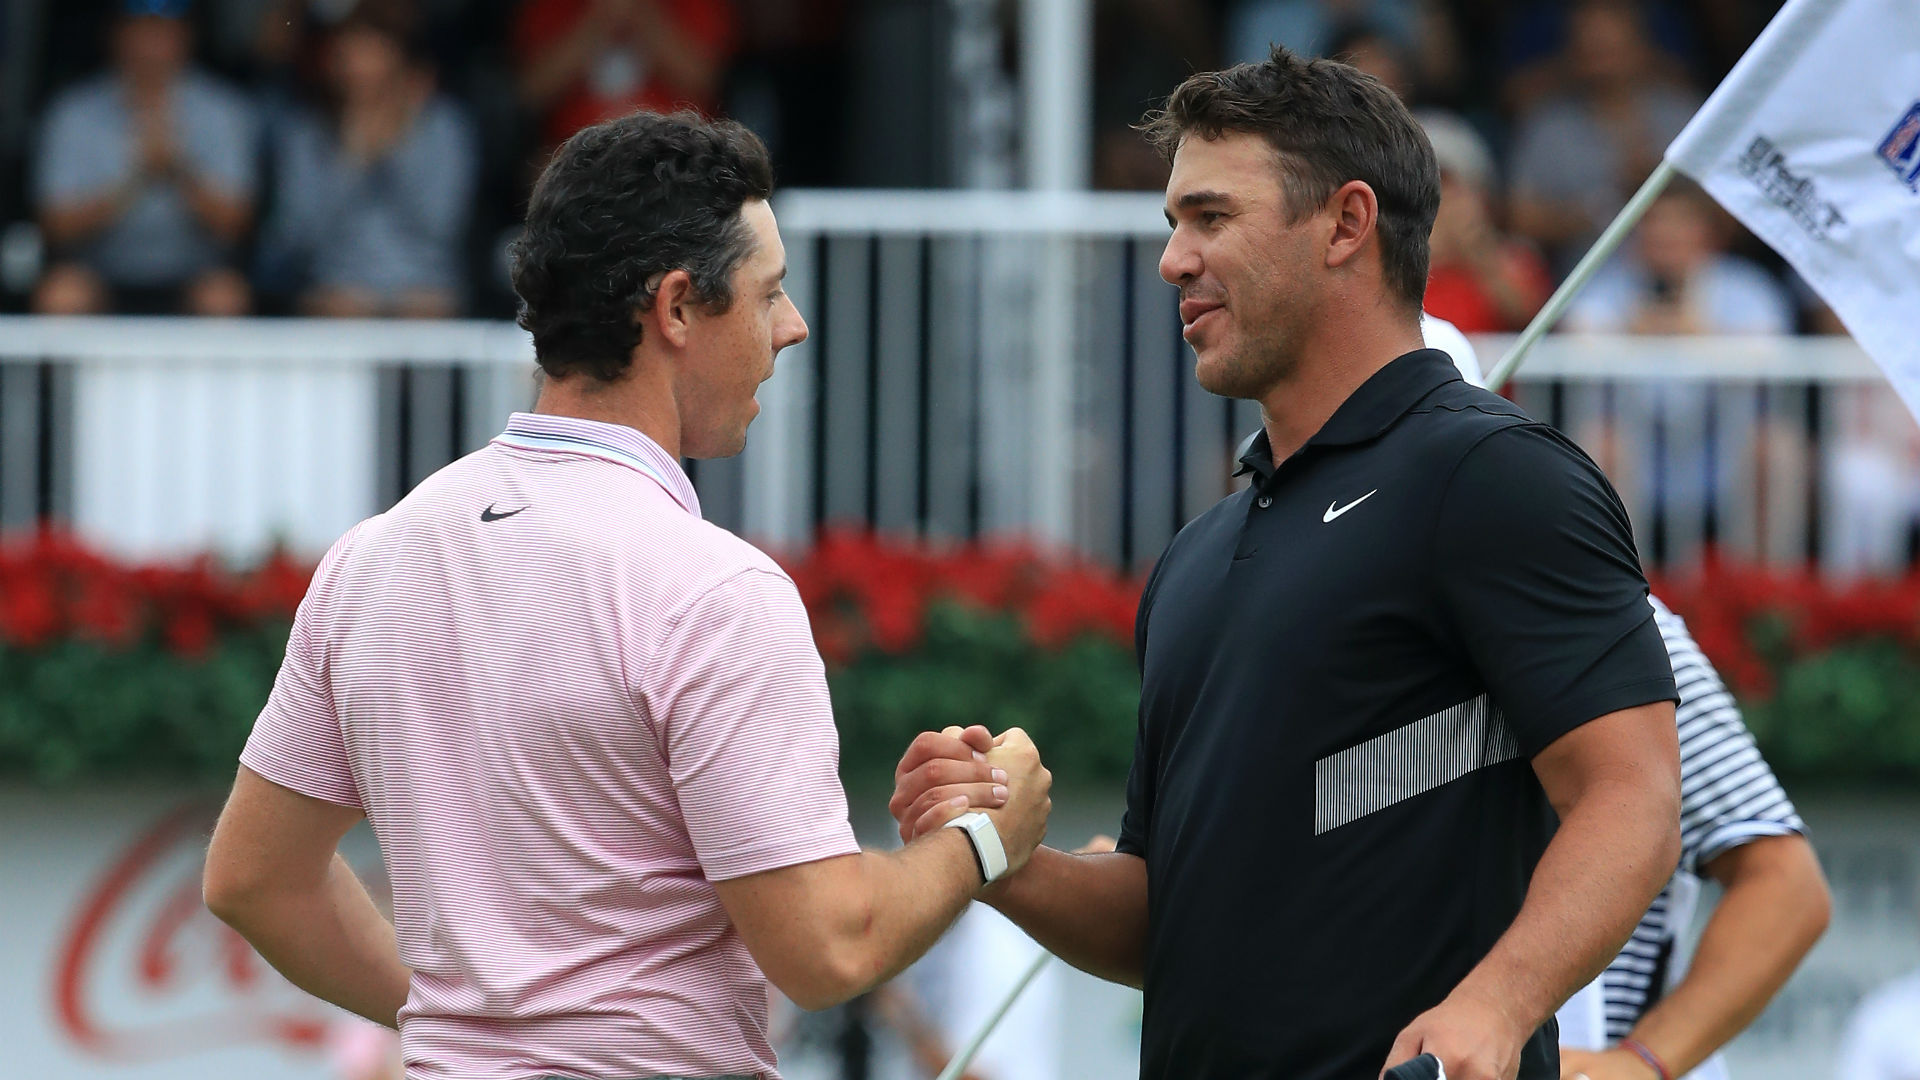 McIlroy and Koepka 'too nice' to have a rivalry like Woods and Mickelson - DiMarco